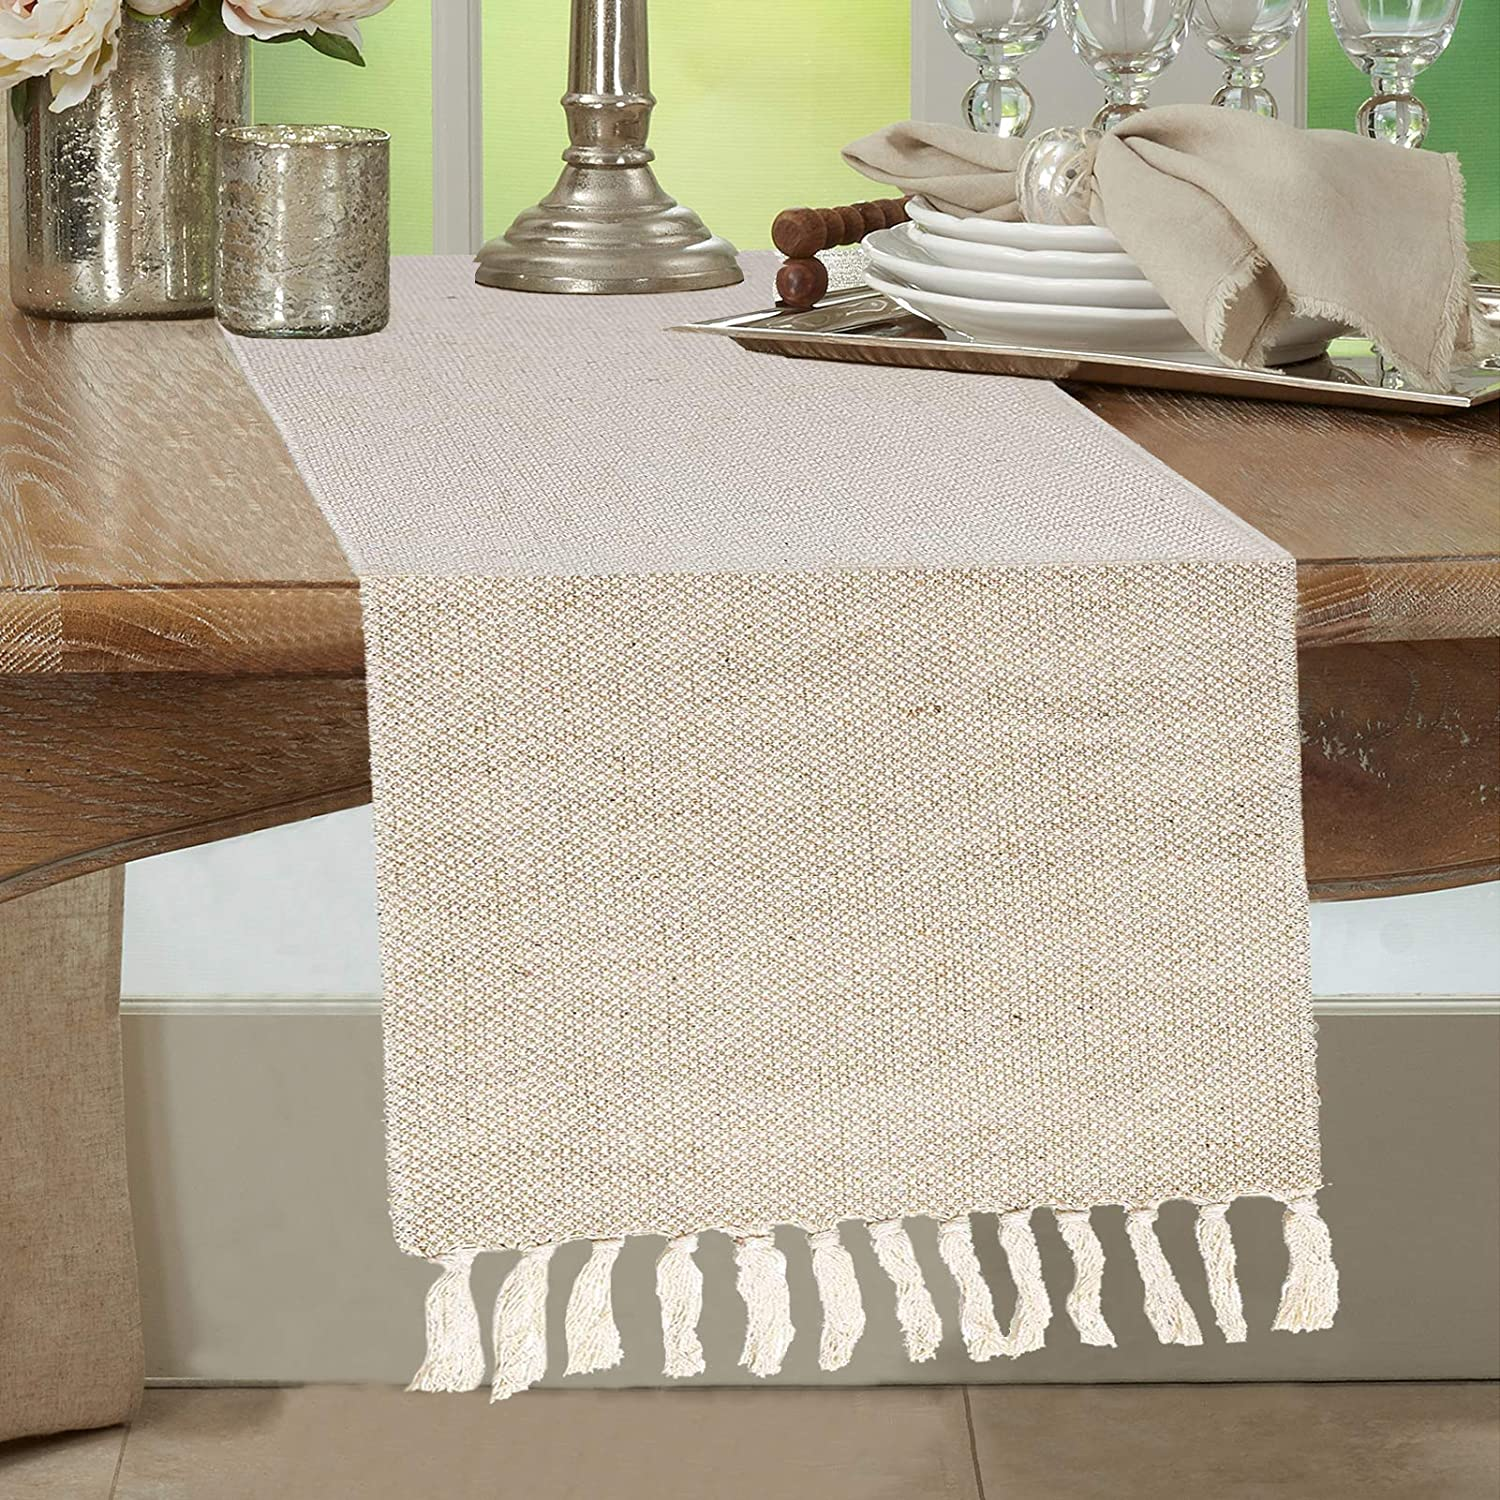 BIOMELAUS Burlap Farmhouse Table Runner, Natural Jute Rustic Table Cover with Tassels for Country Wedding Picnic Party Family Dinner Vintage Dining Table Piano Runner, 13x72